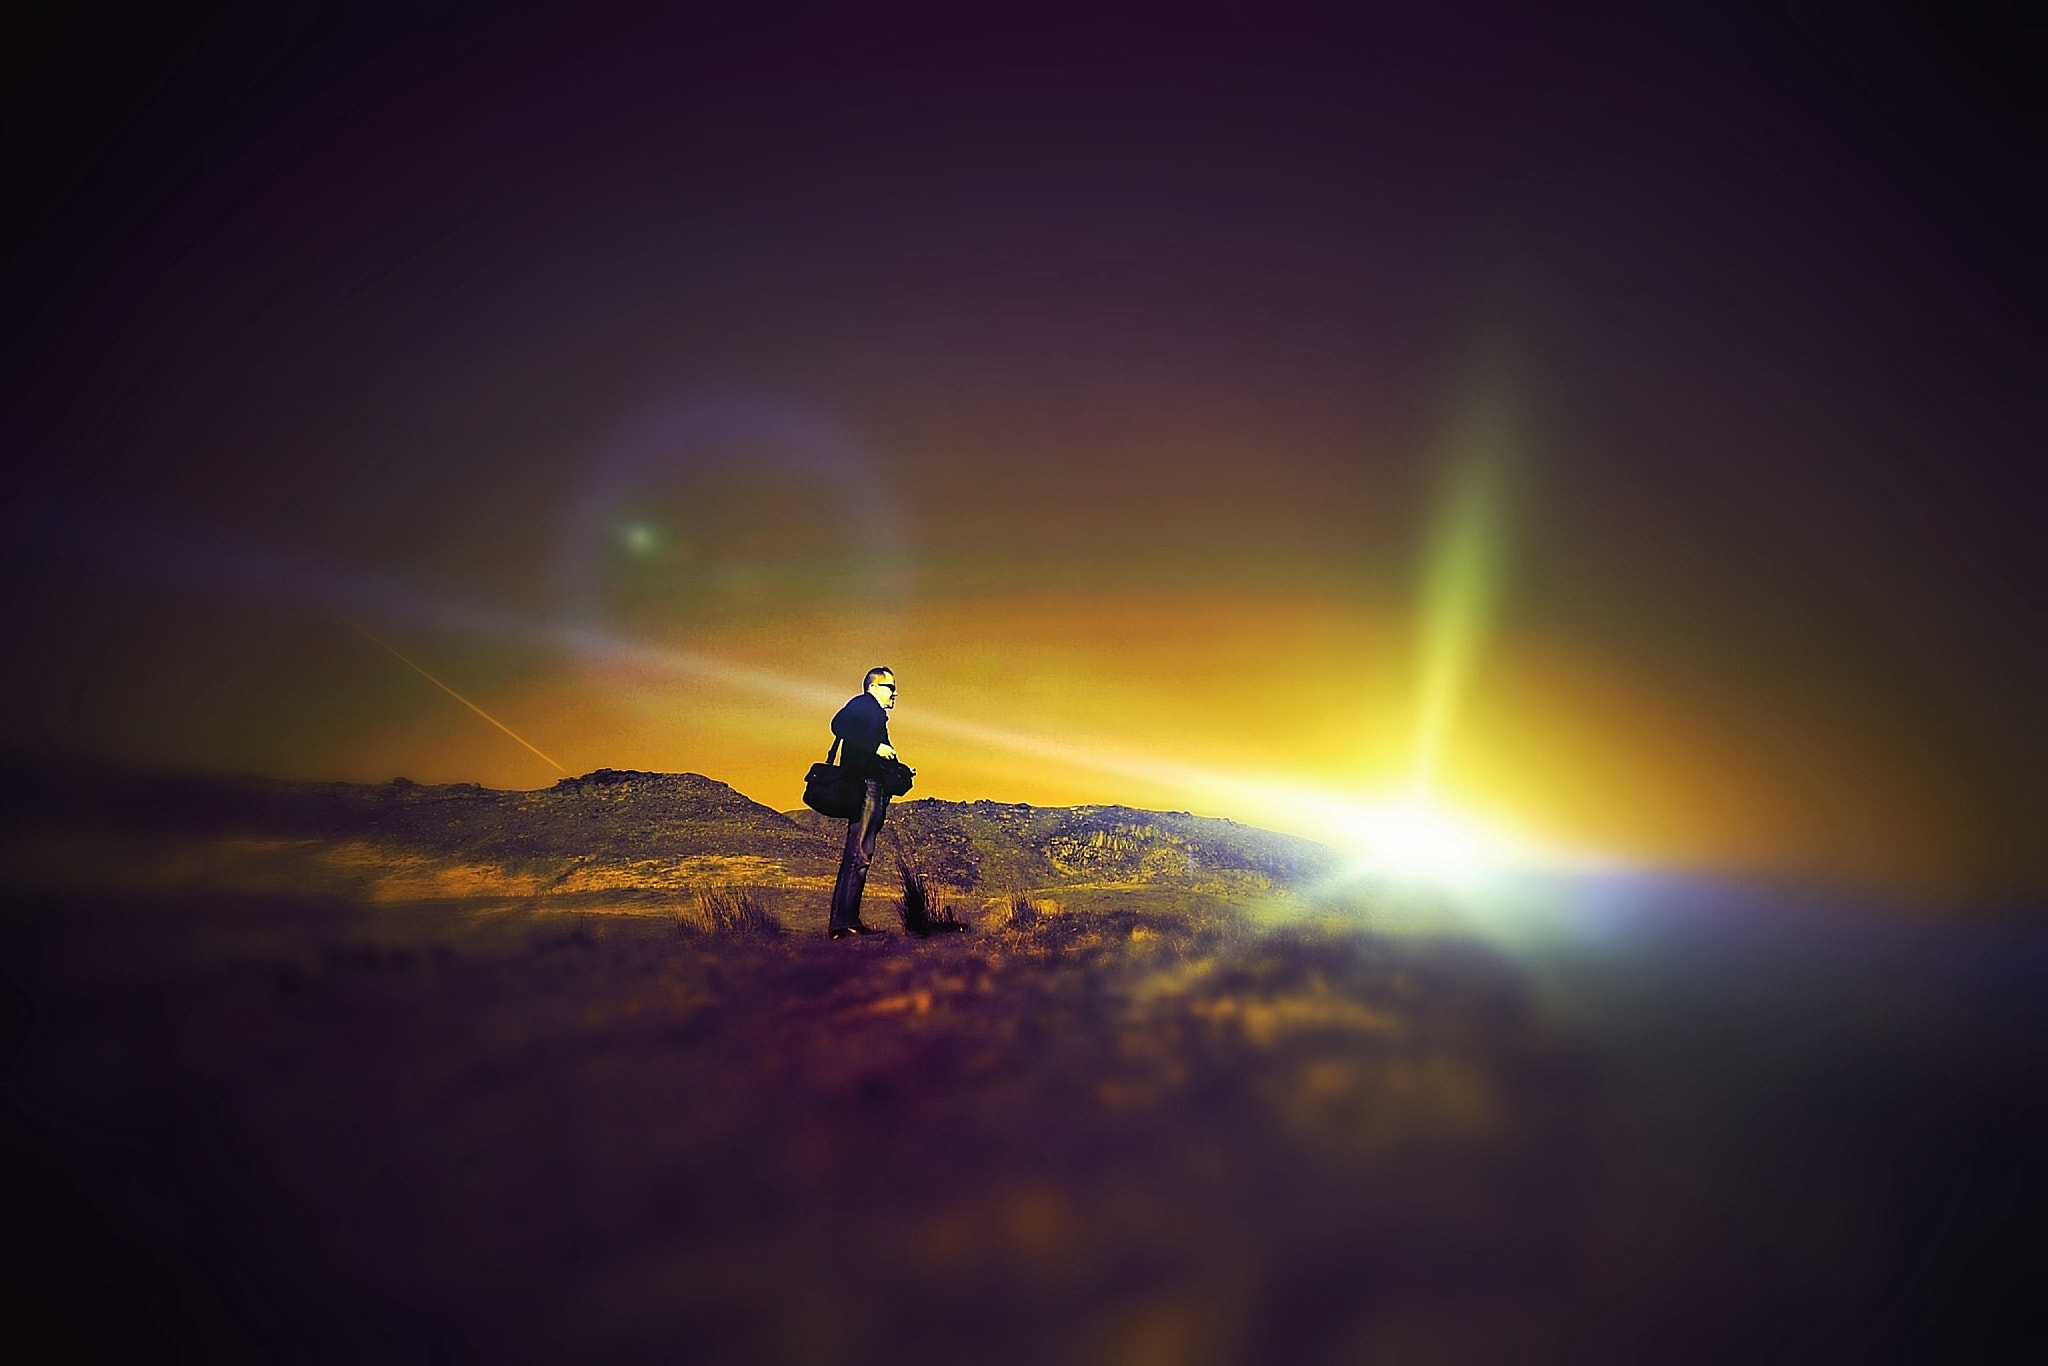 Photograph Planetary Traveller by Phil Martin on 500px